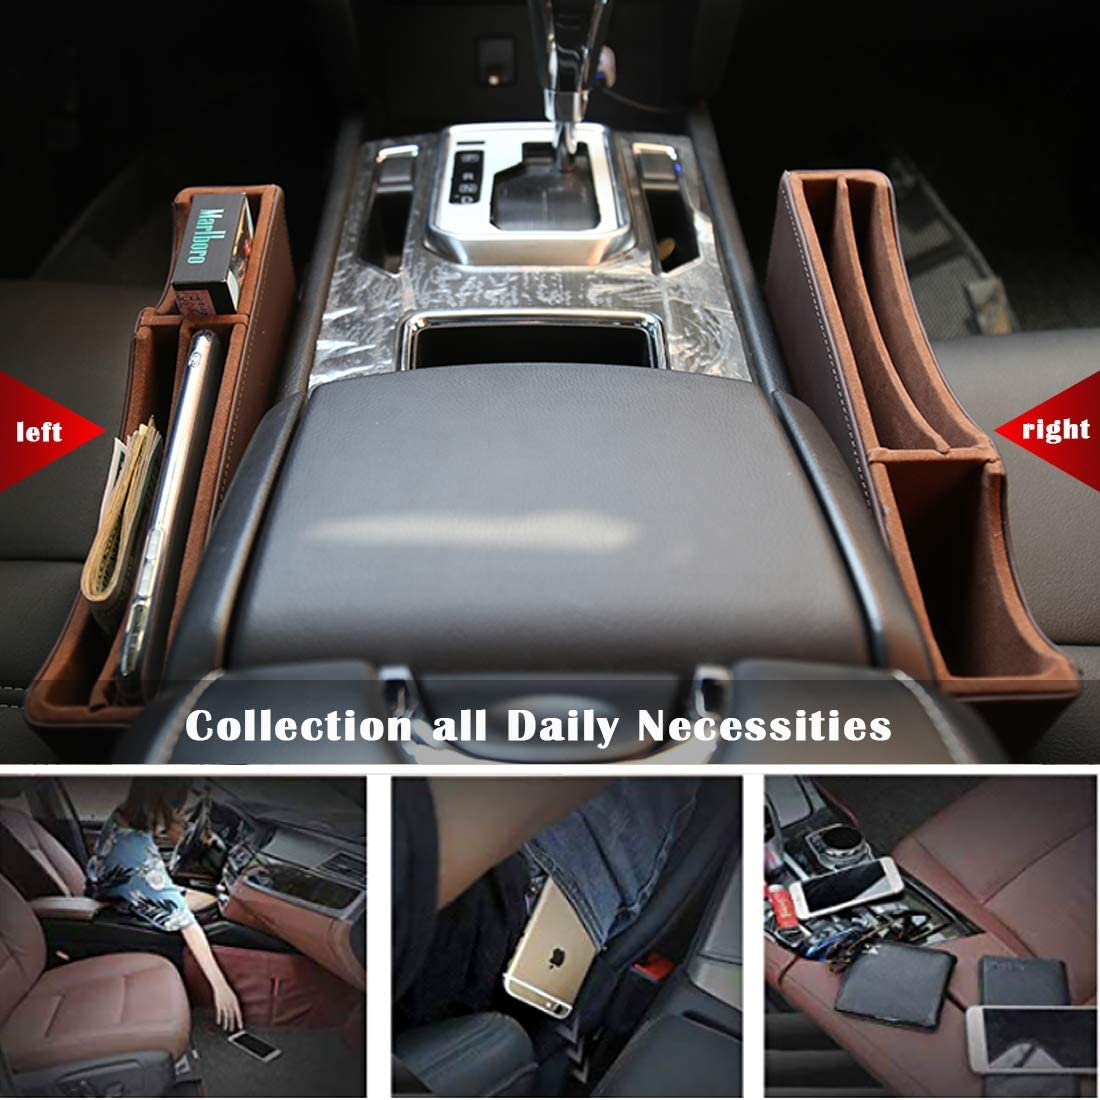 Car Pocket Interior Accessories N // A Maodaner Universal 2PCS Car Seat Gap Filler Premium PU Leather Seat Console Organizer Mocha Seat Crevice Storage Box for Smartphone Coin Wallet Key